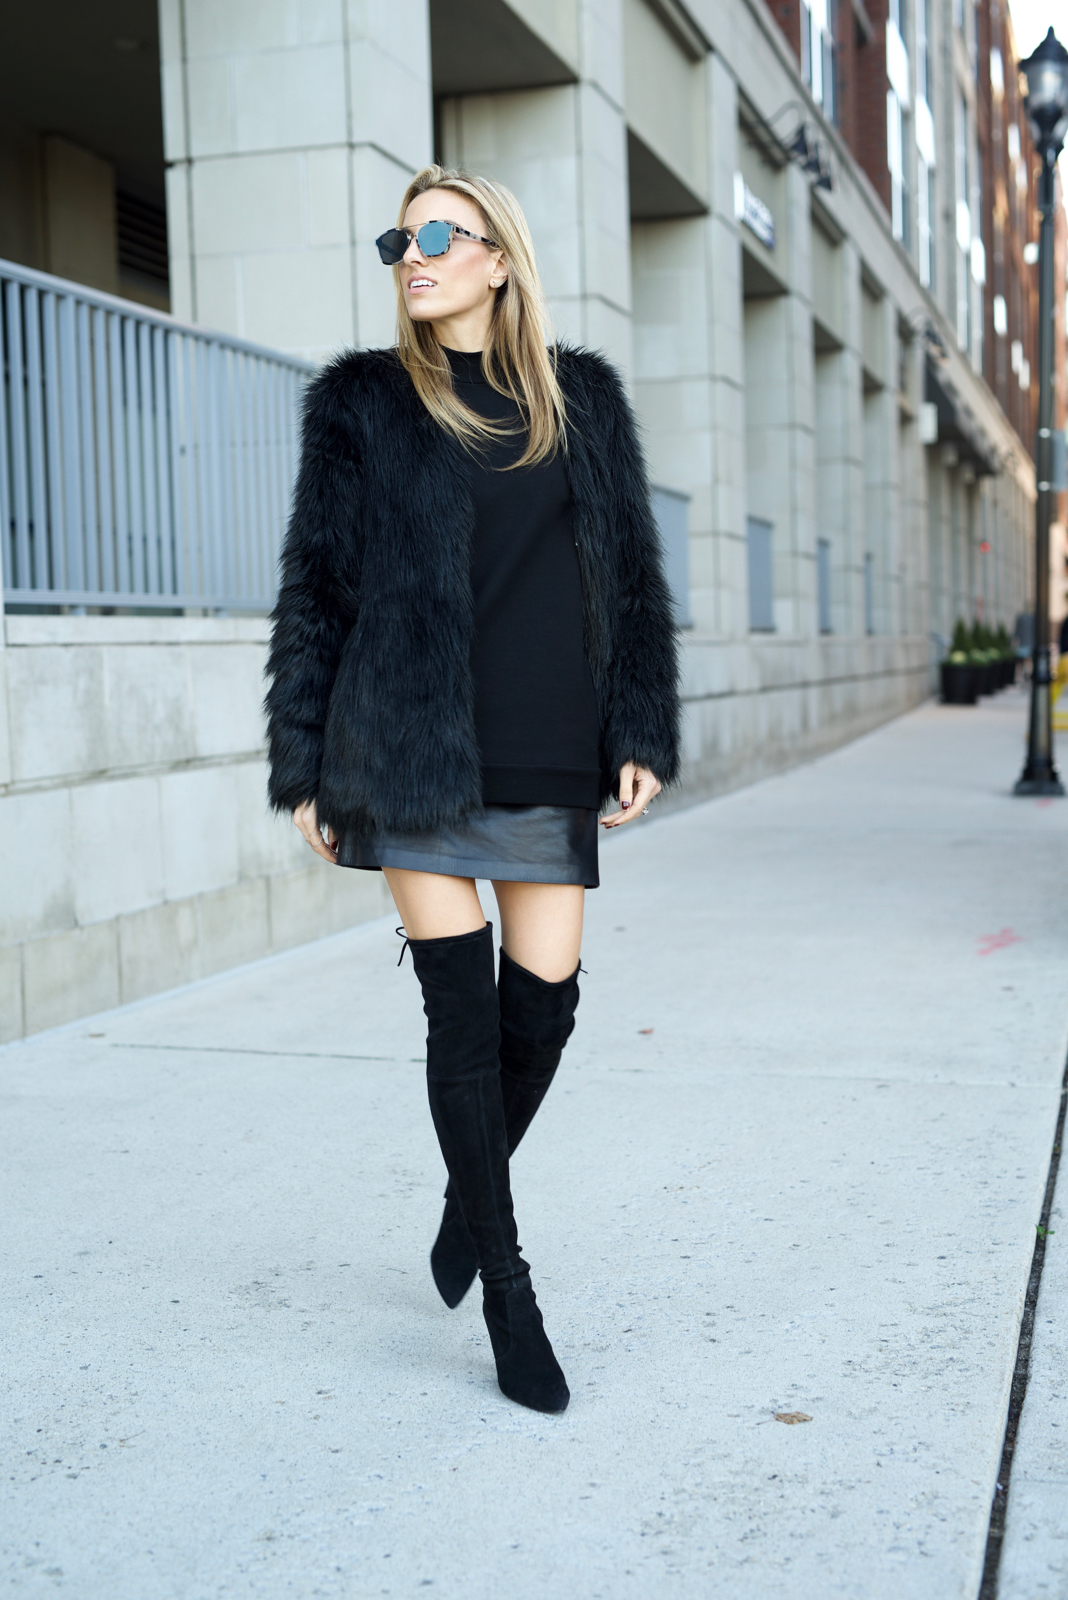 all black outfit, black friday deals, faux fur, dior sunglasses, Stuart Weitzman over the knee boots